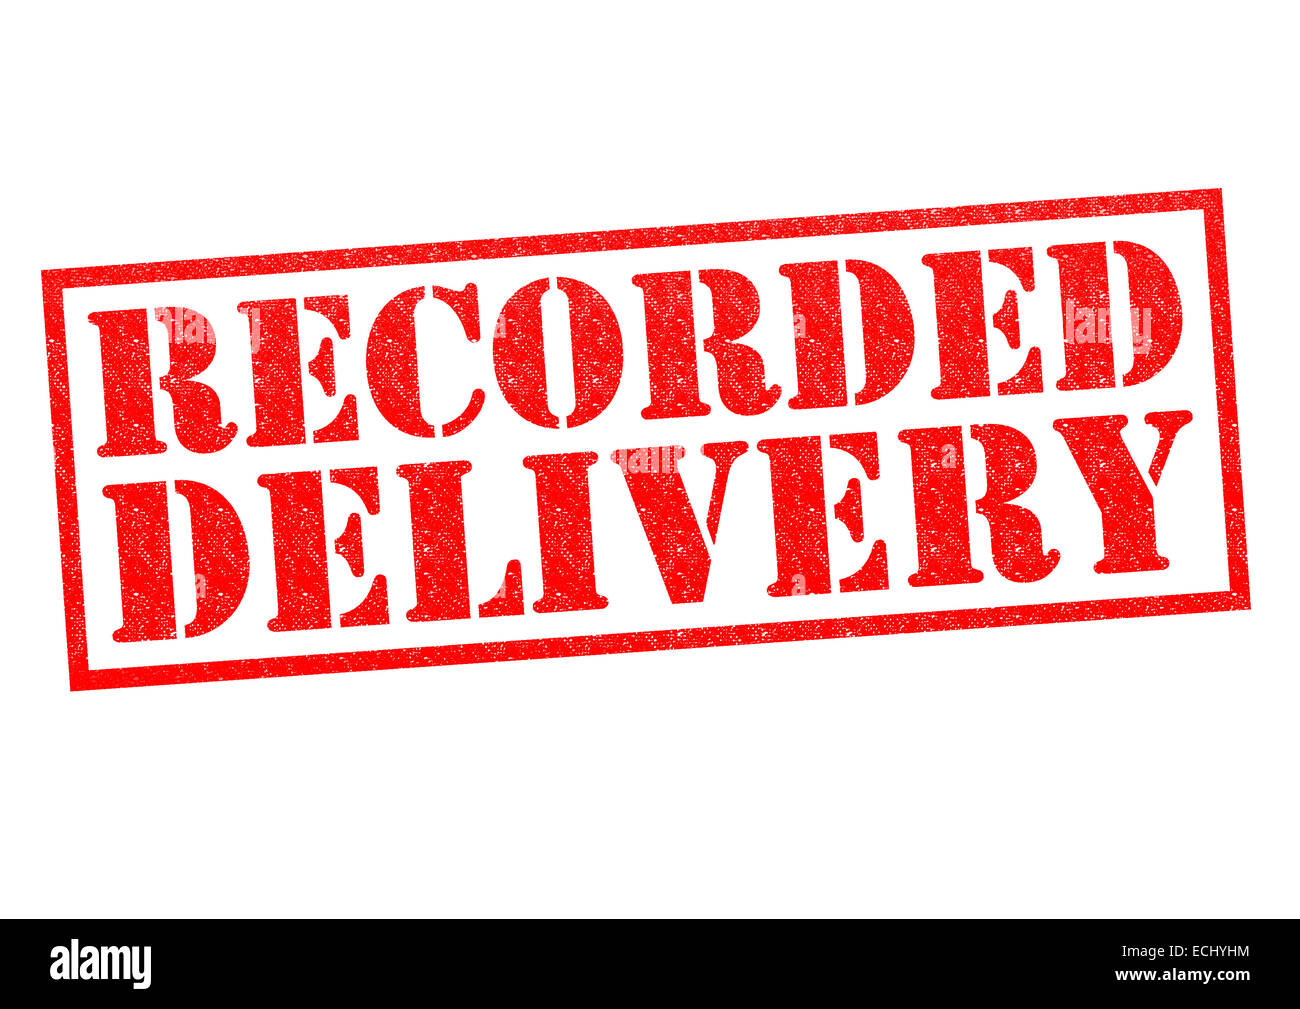 Who should choose recorded delivery?